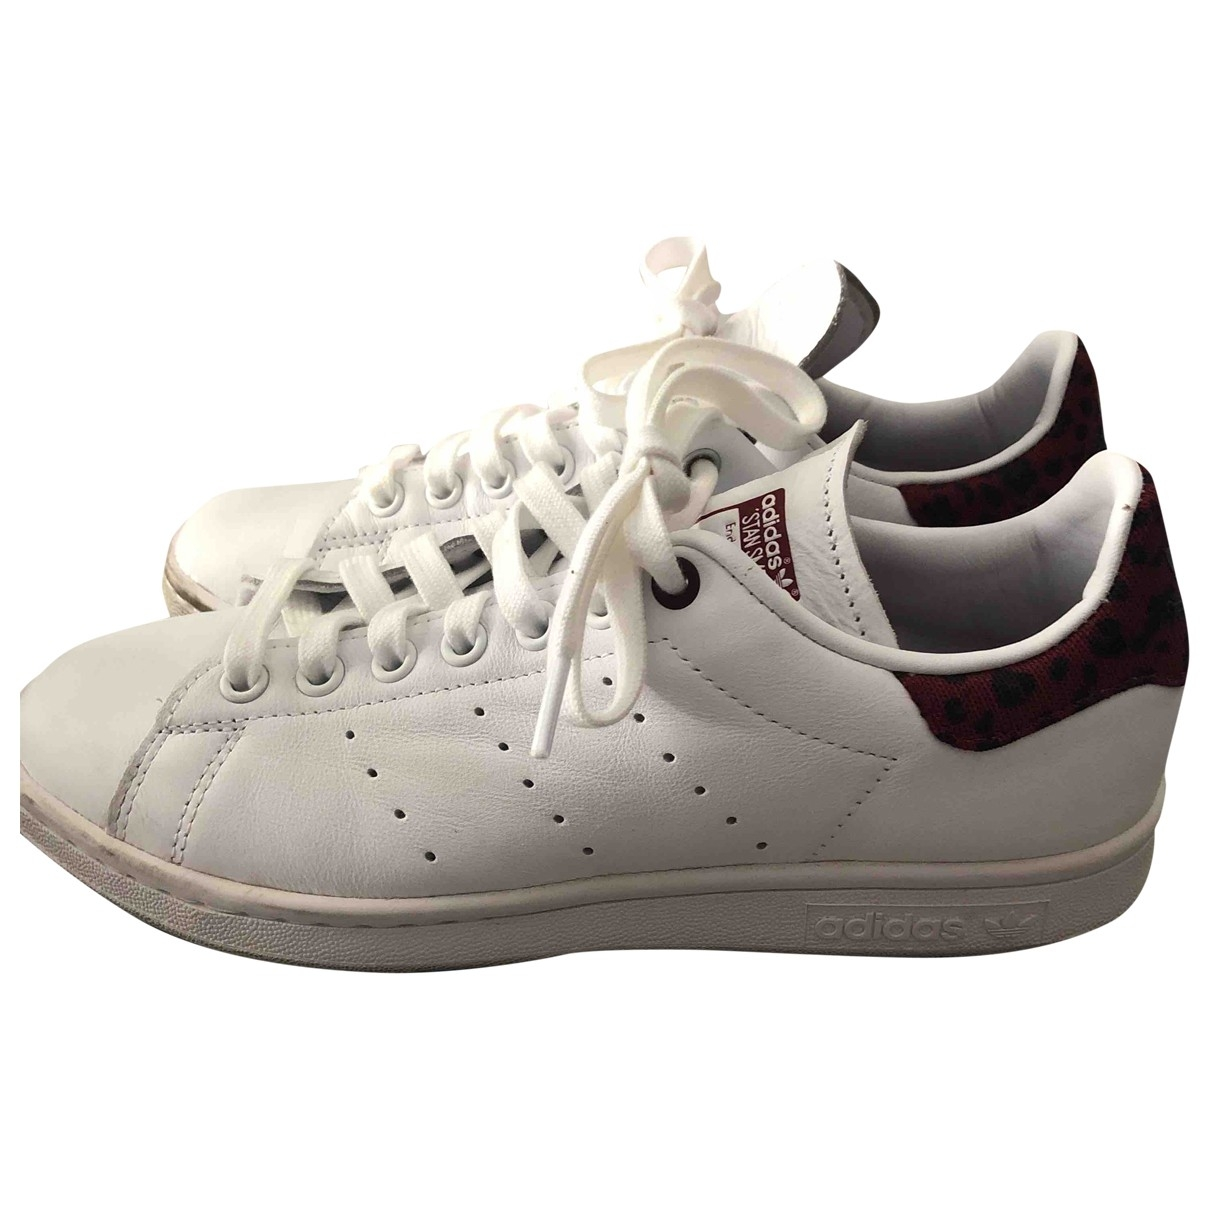 Adidas Stan Smith White Leather Trainers for Women 38.5 IT